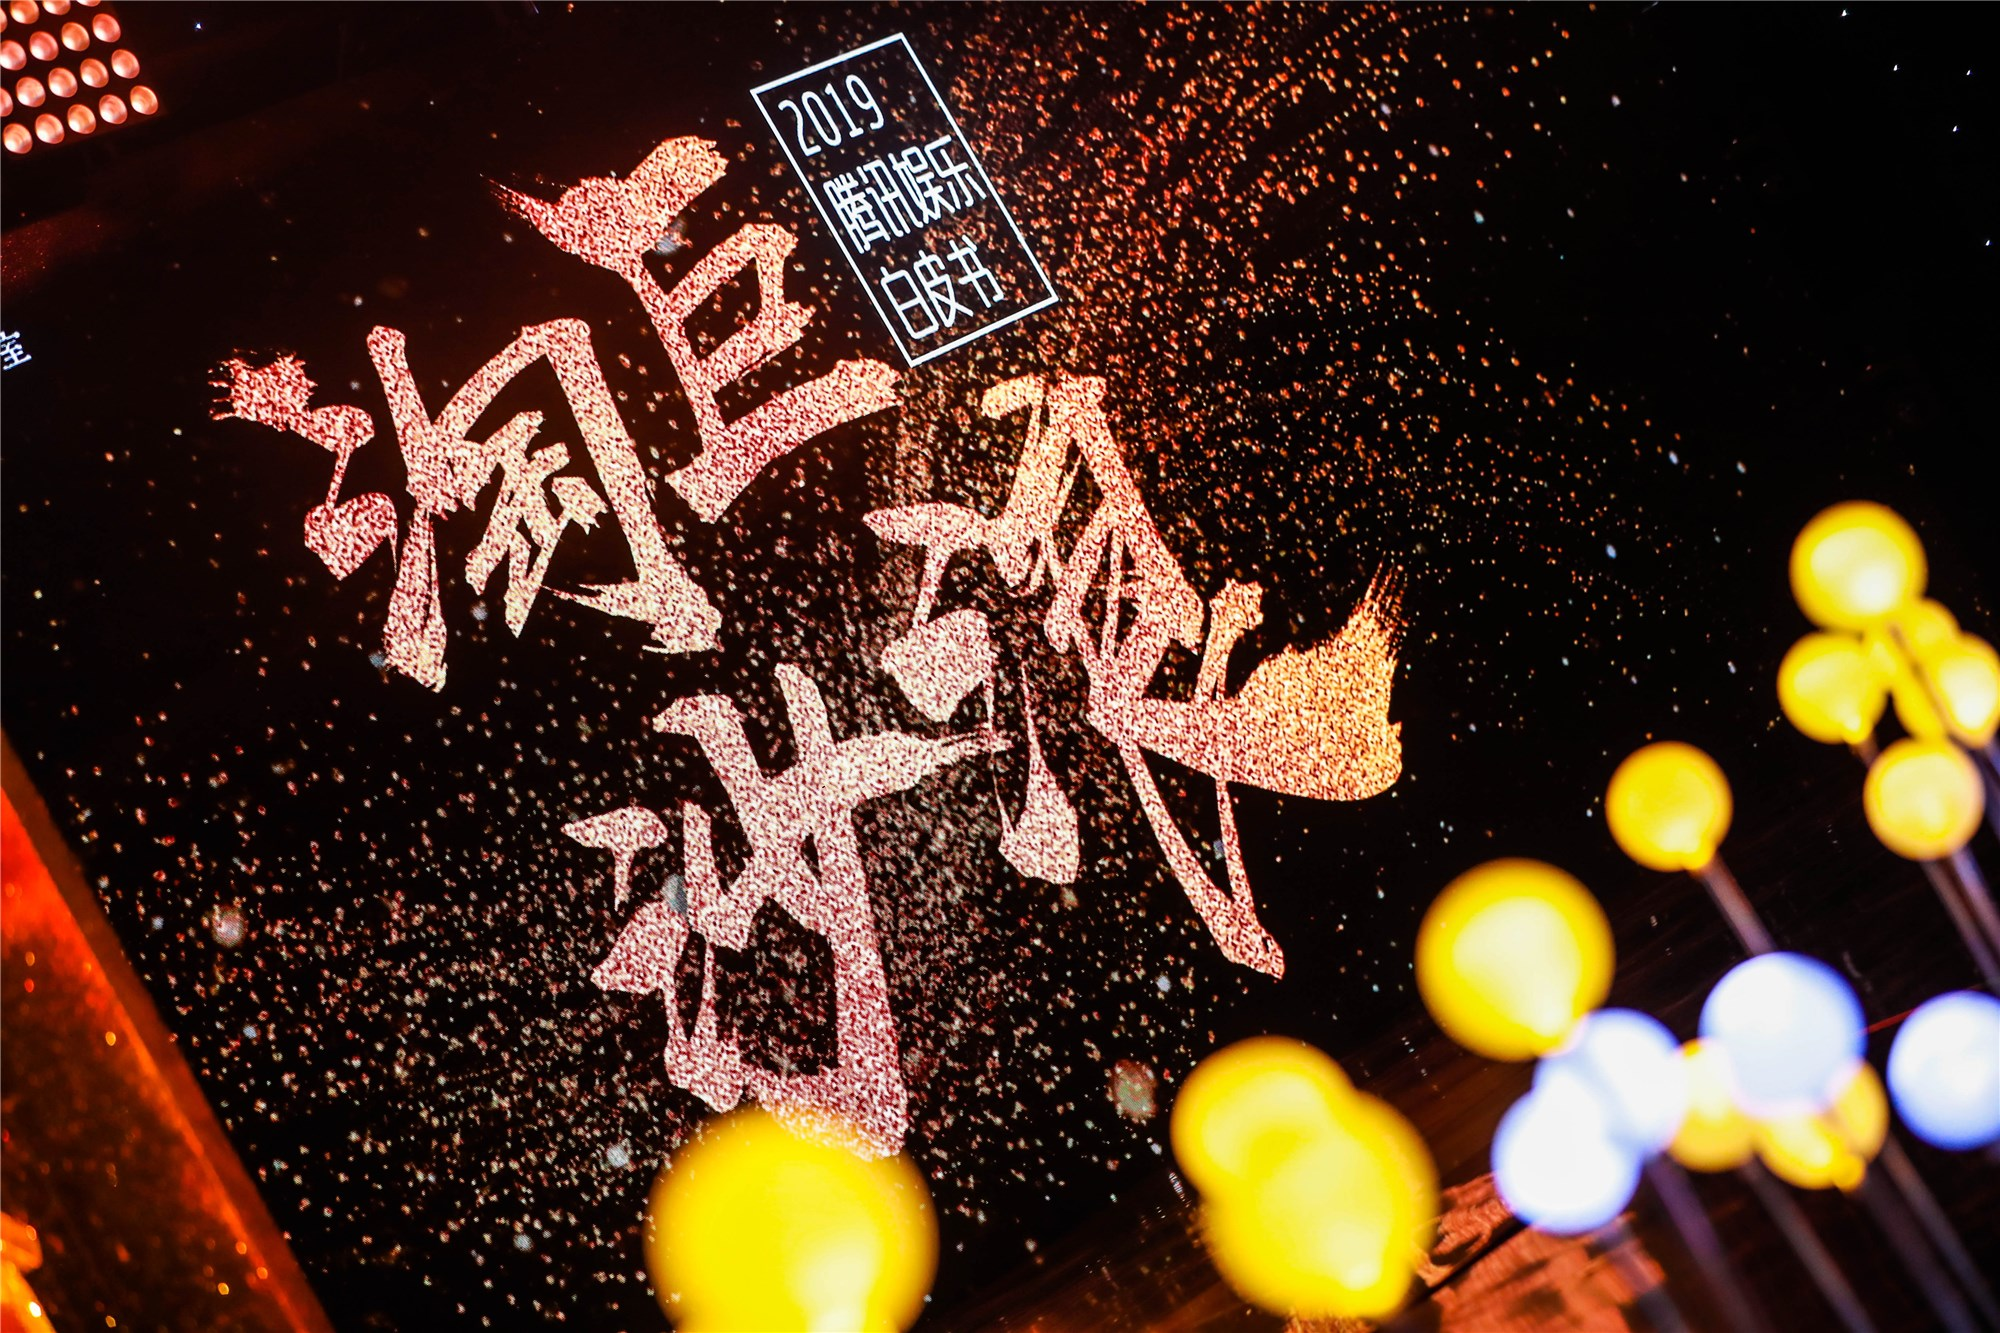 Upgrade of public aesthetics creates better productions from China's showbiz industry: report